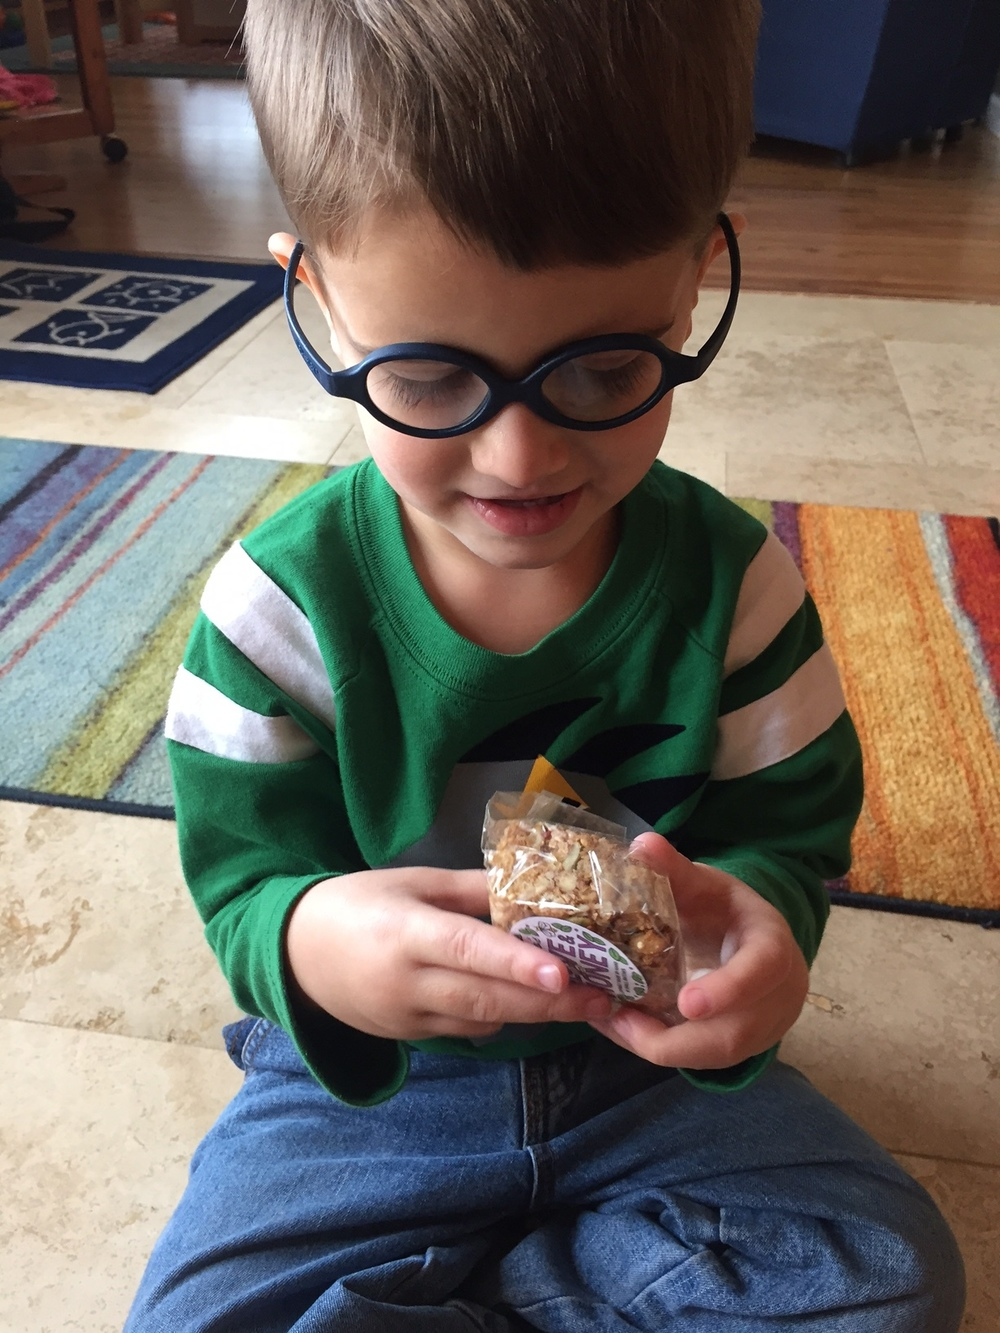 """Holly from Alaska sent this photo of her little man unwrapping a """"For Love and Honey"""" granola bar. Can he possibly be any cuter?!!"""